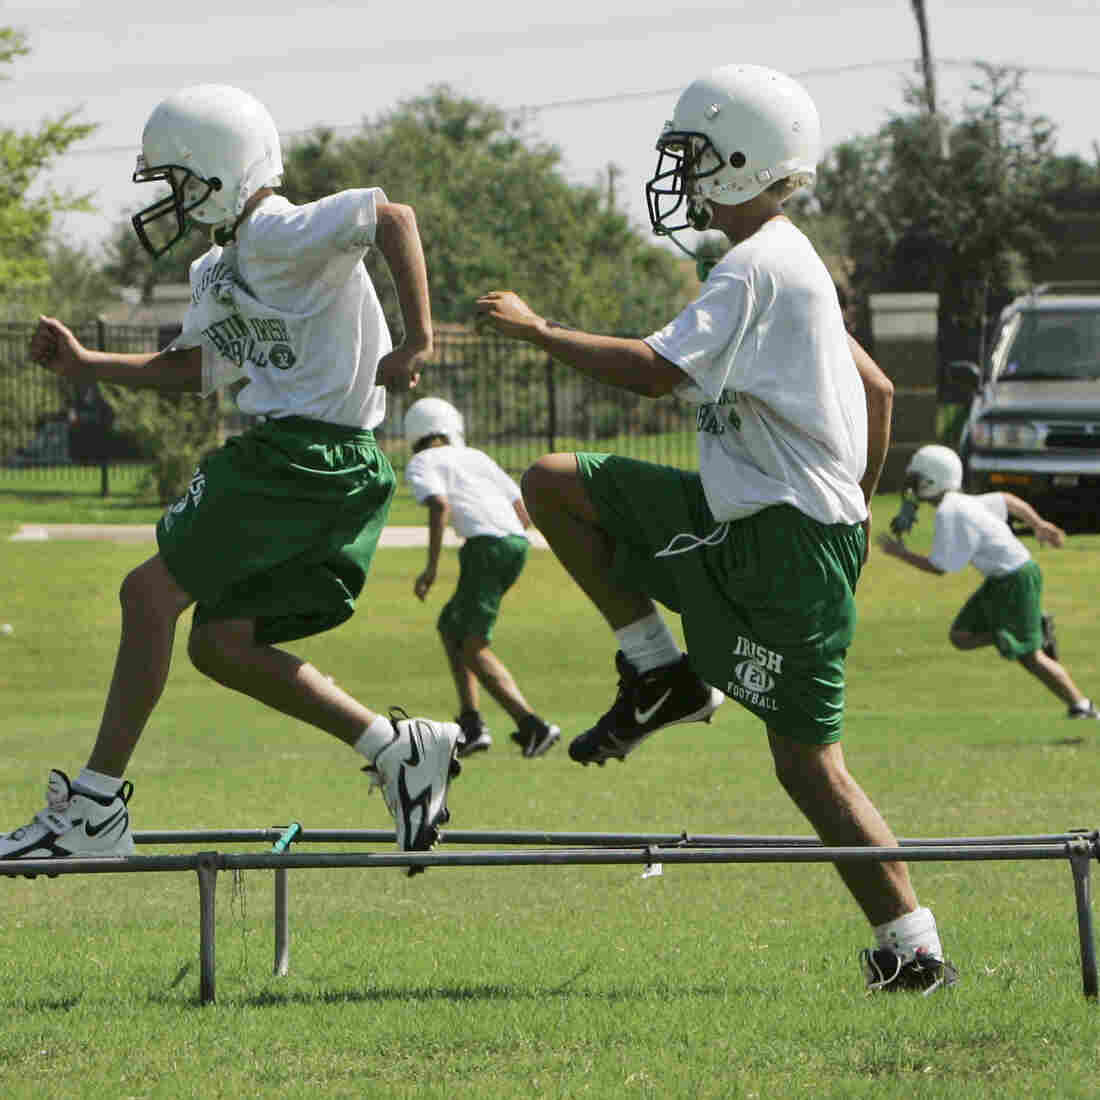 A Safety Checklist To Save Teen Athletes' Lives